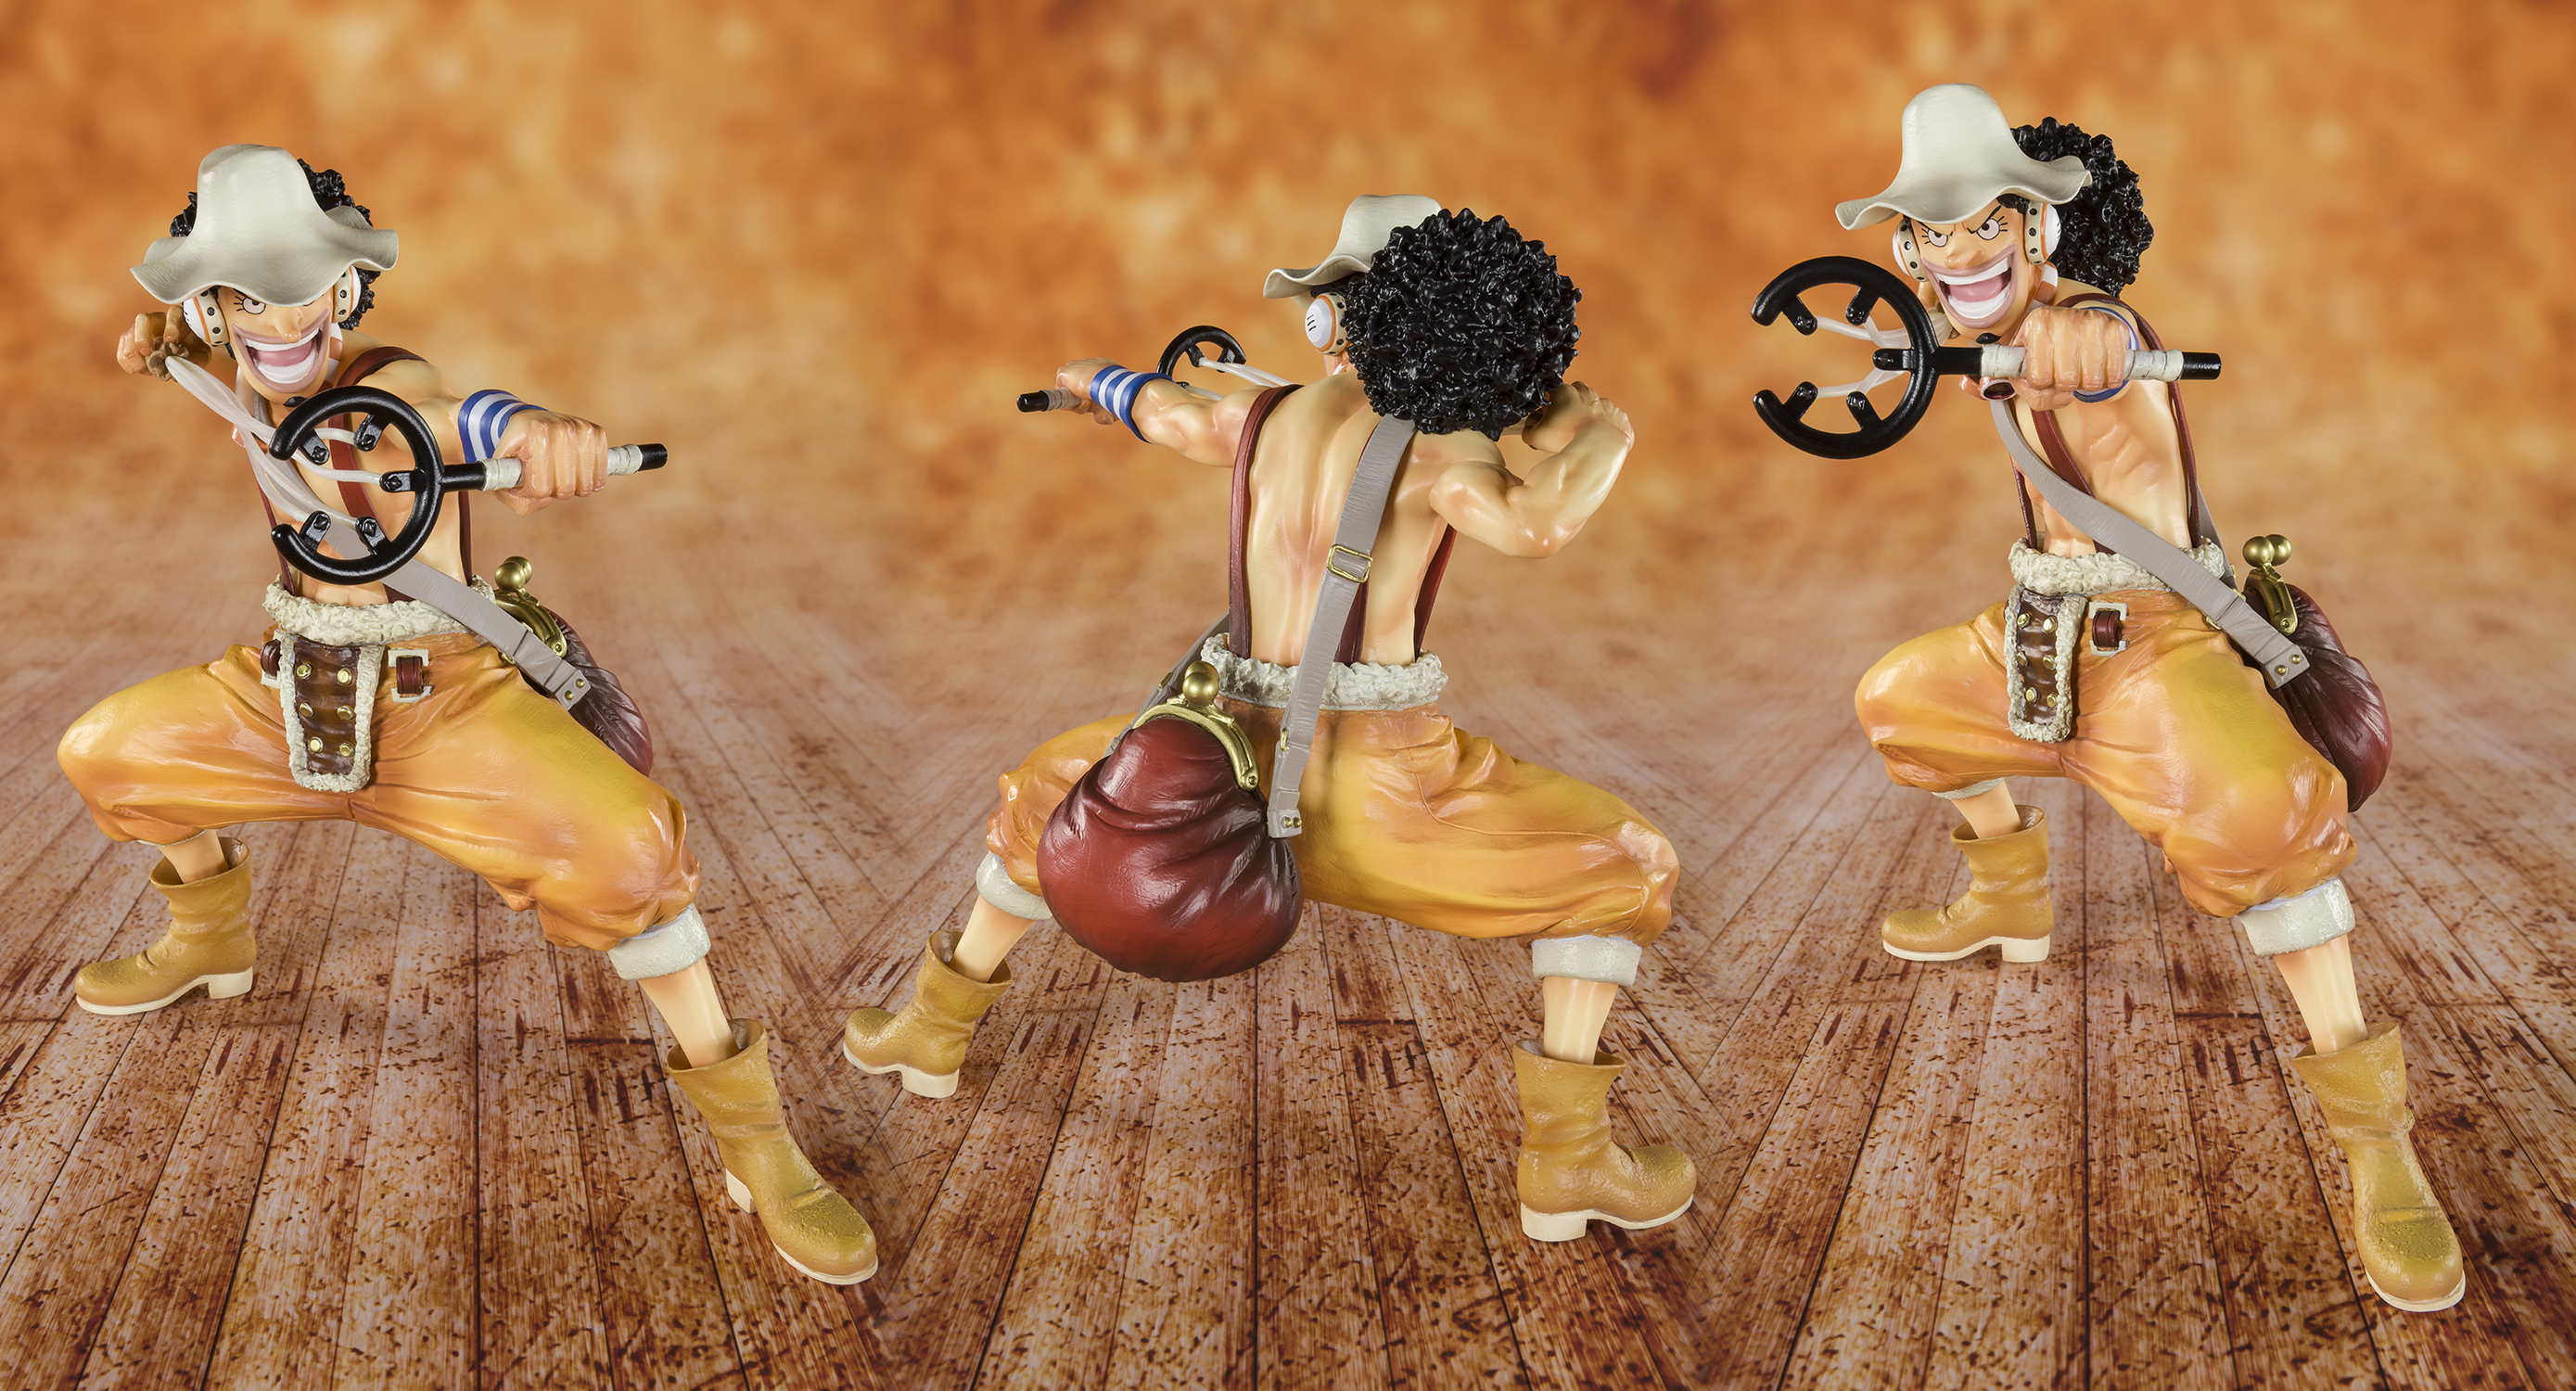 ONE PIECE KING OF SNIPERS USOPP FIGUARTS ZERO AF